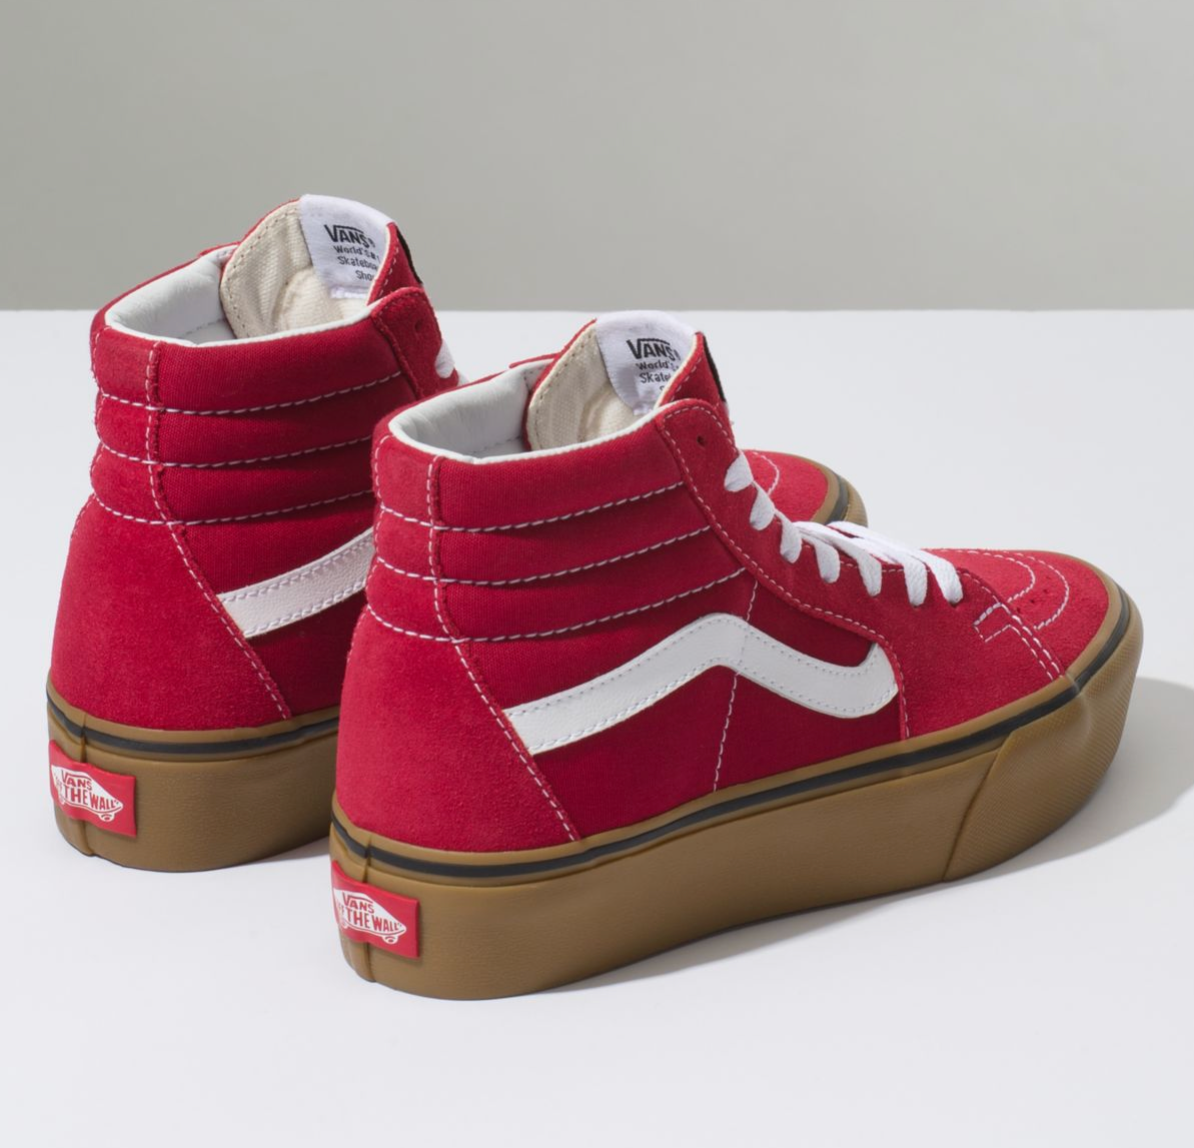 65d88dbd VANS GUM SK8-HI PLATFORM 2 - Scooter Red – Atmos New York